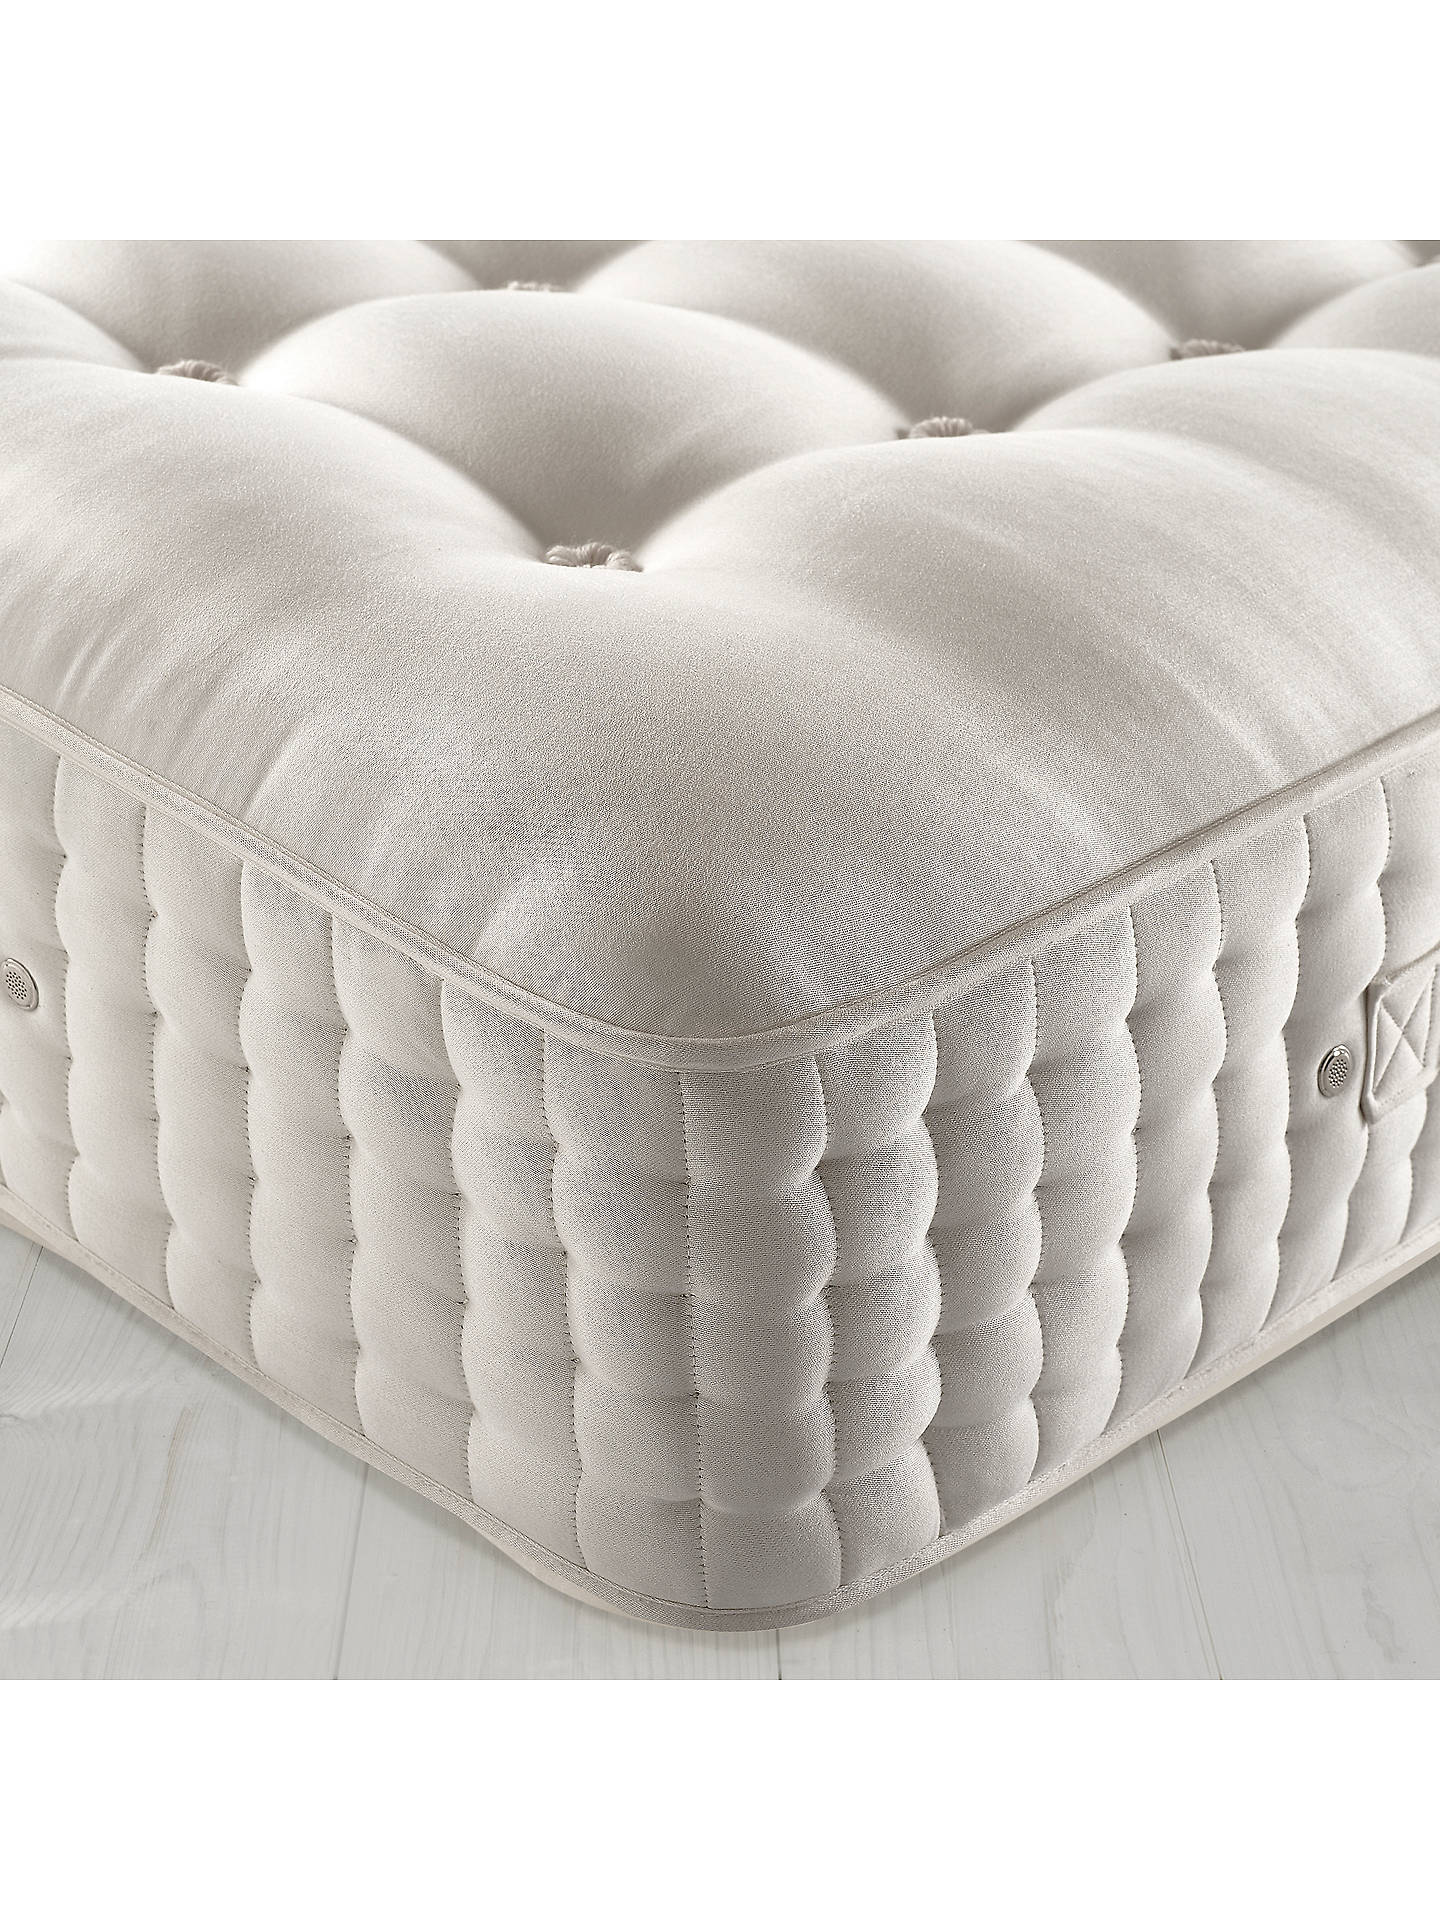 Buy John Lewis & Partners The Ultimate Collection Goat Angora Pocket Spring Mattress, Medium, Emperor Online at johnlewis.com